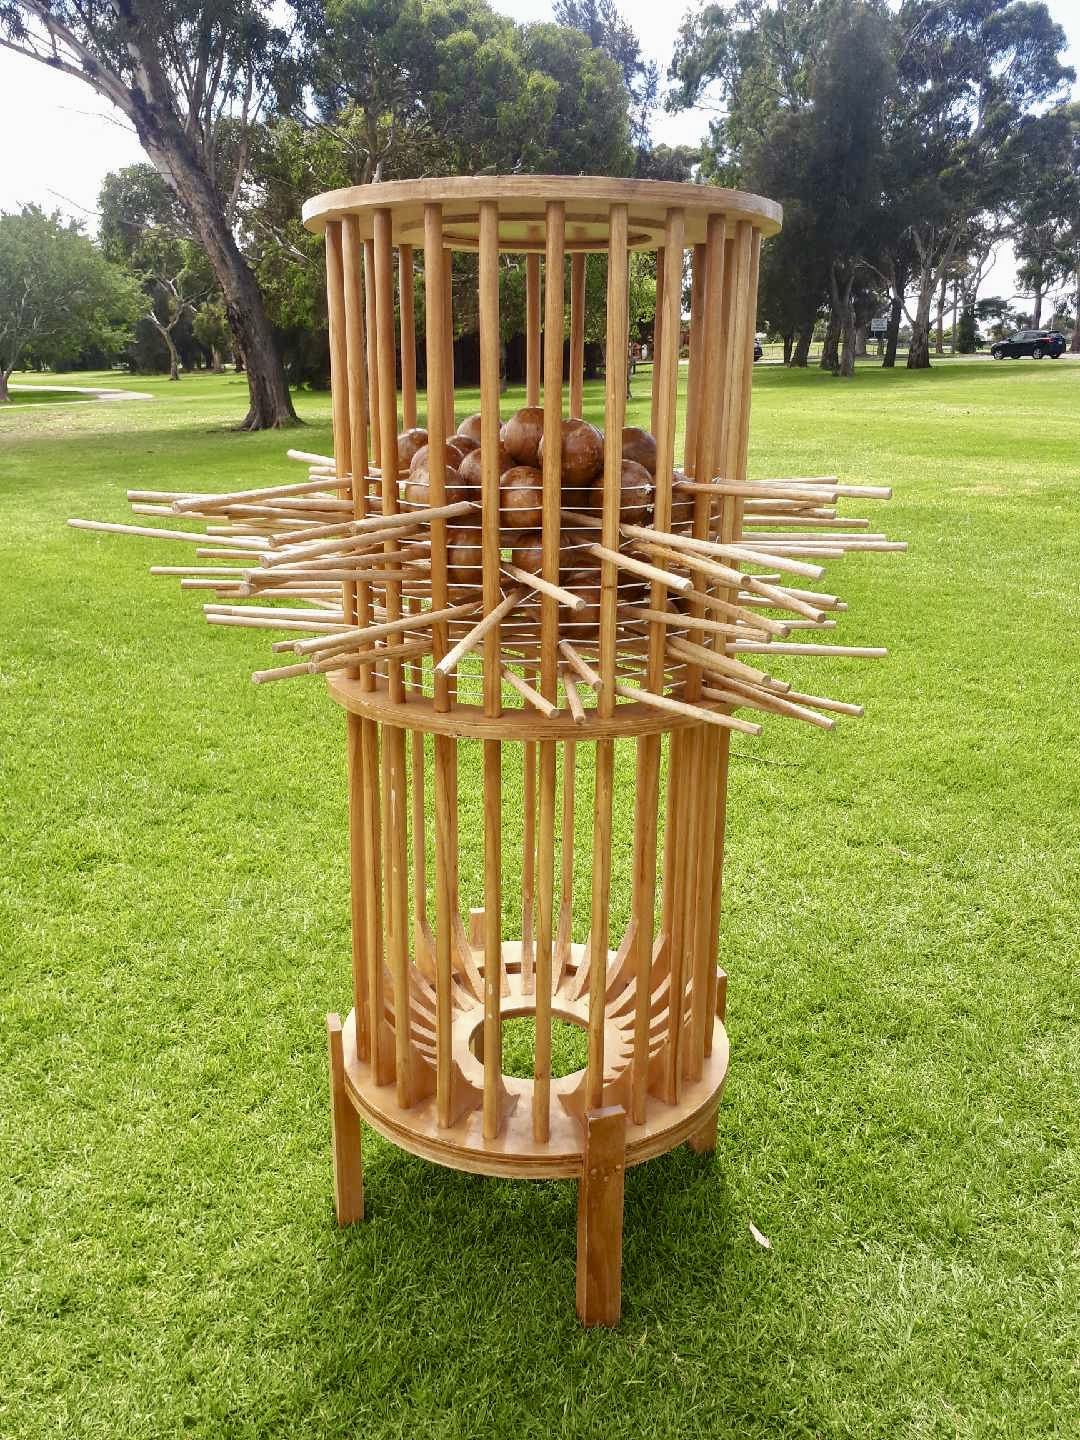 Giant Wooden Kerplunk Game Set 1.5m Height